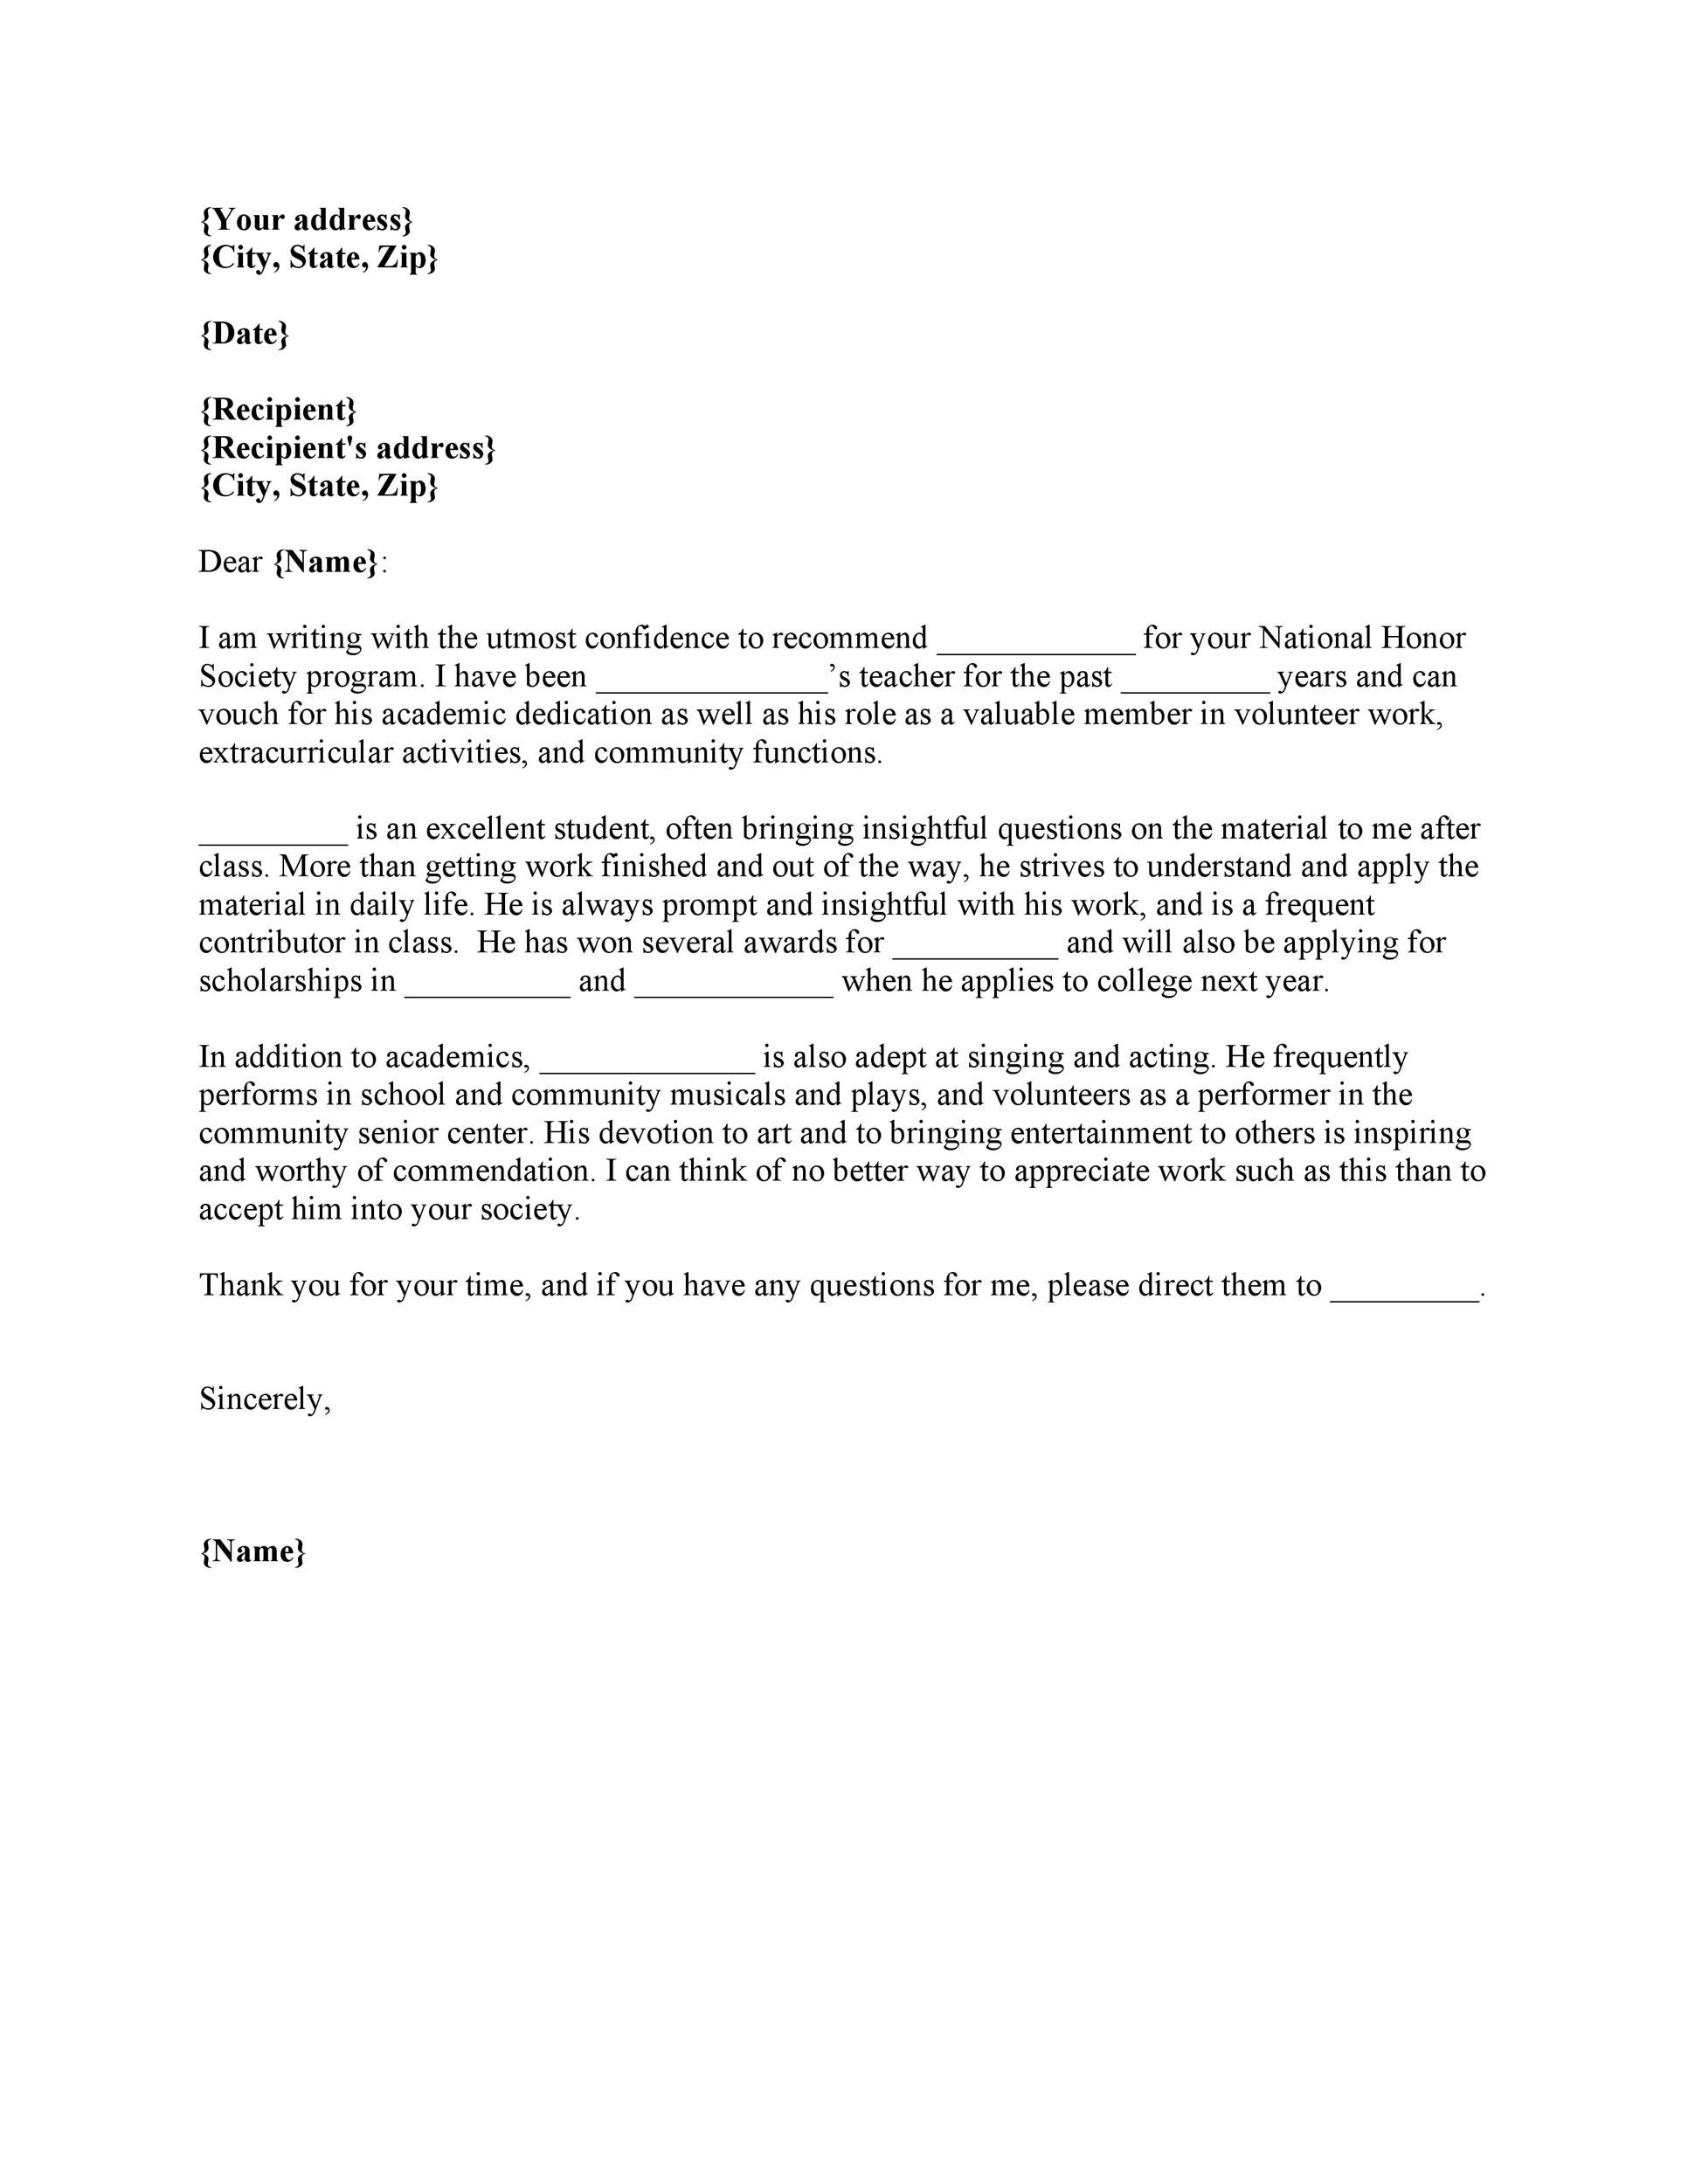 Letter Of Recommendation Address from templatelab.com